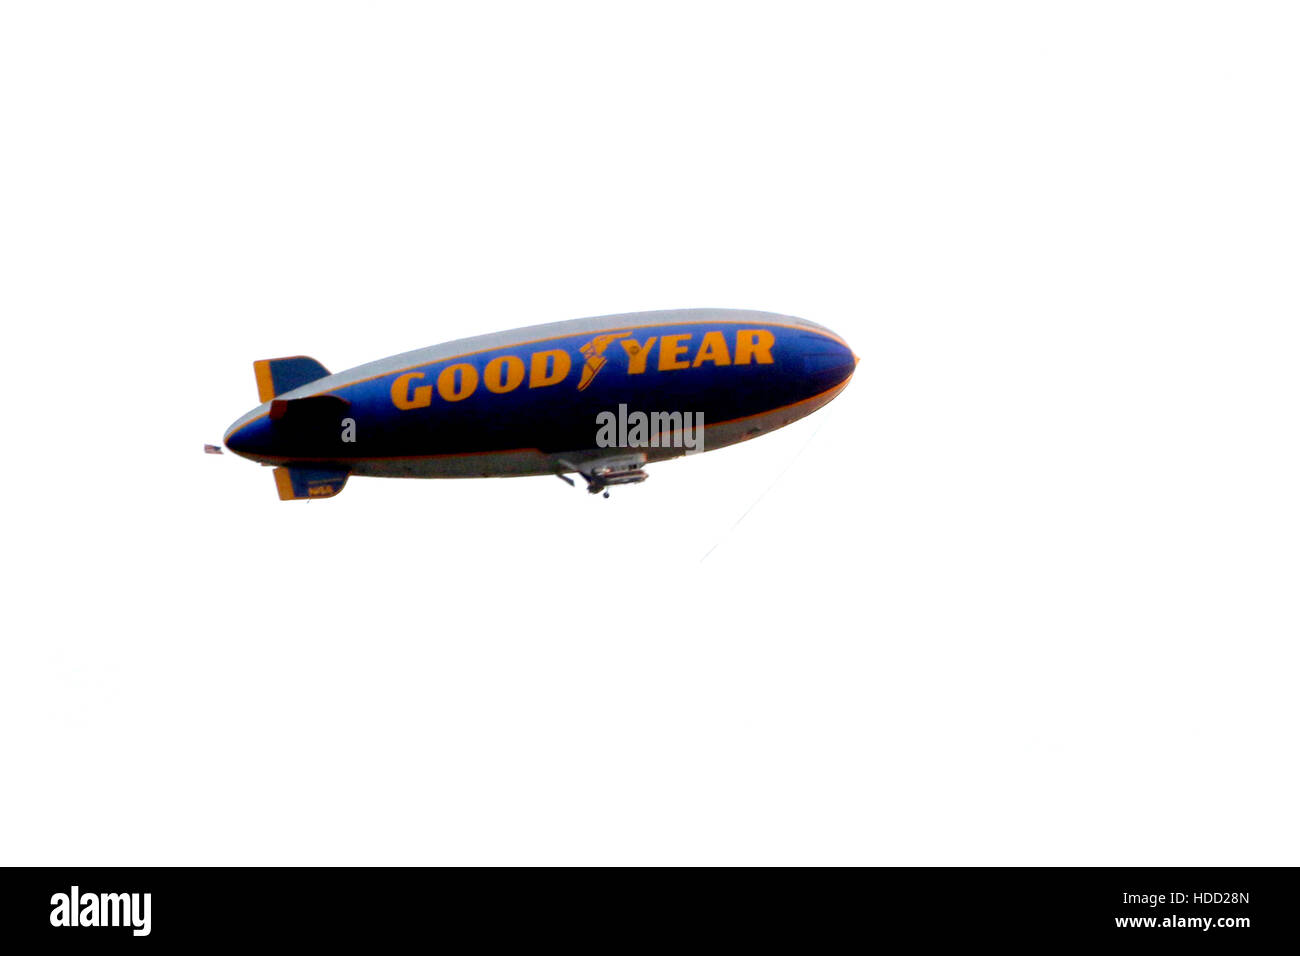 'Voyage Of Time: The IMAX Experience' Premiere at the California Science Center  Featuring: Goodyear Blimp - Stock Image